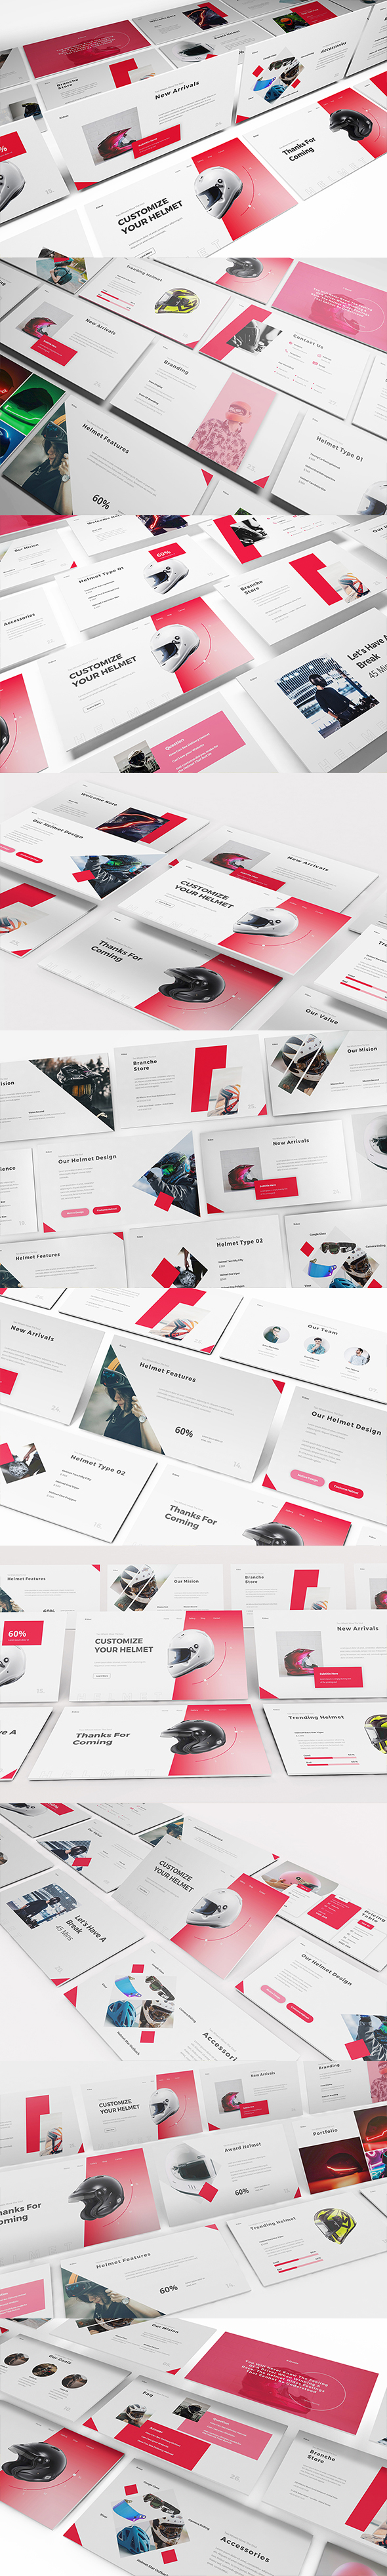 Helmet Shop Keynote Template